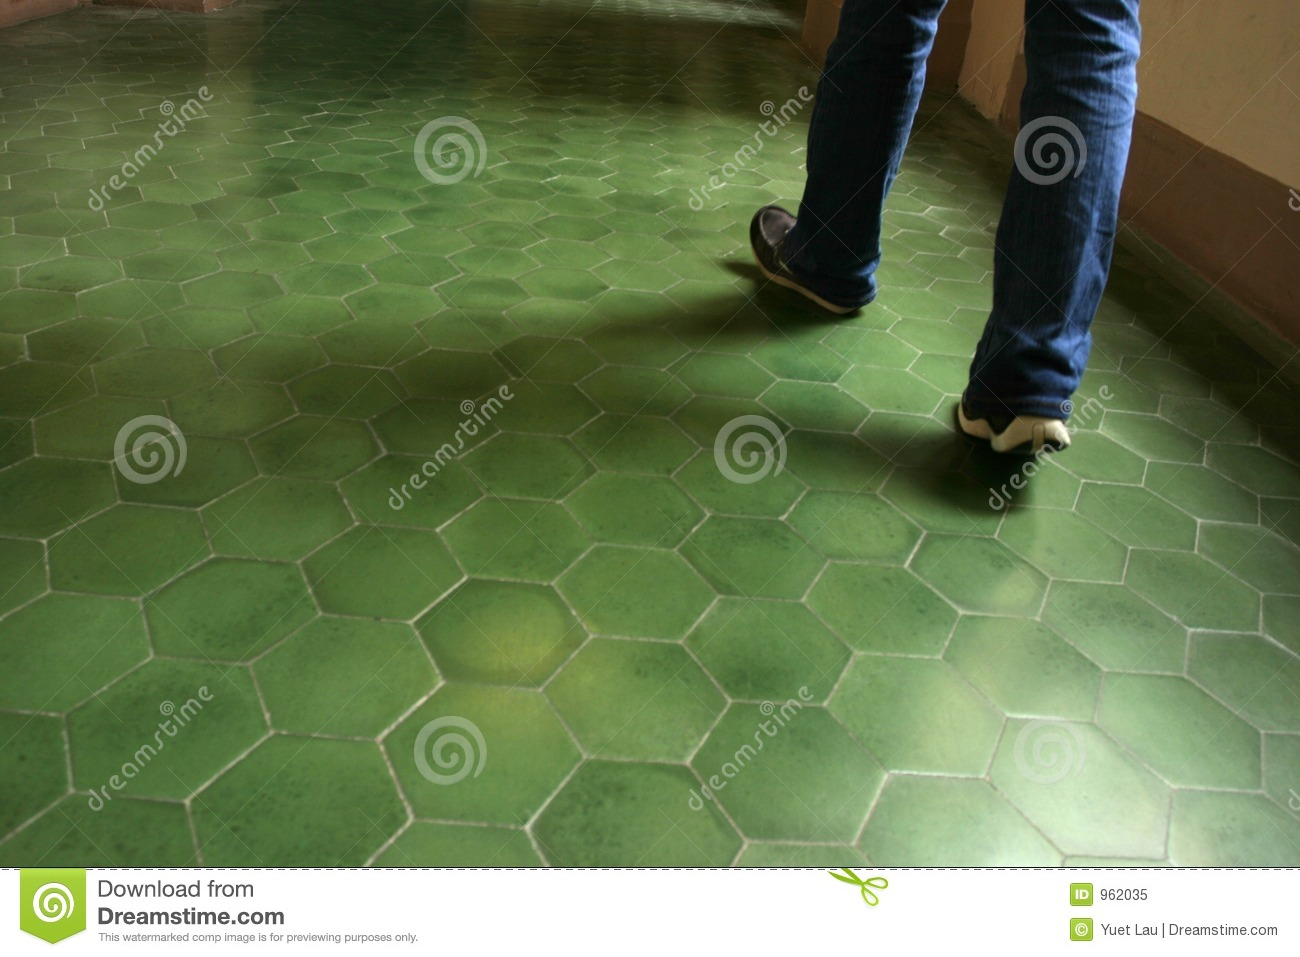 Green Floor green tile floor in an ancient building royalty free stock photo